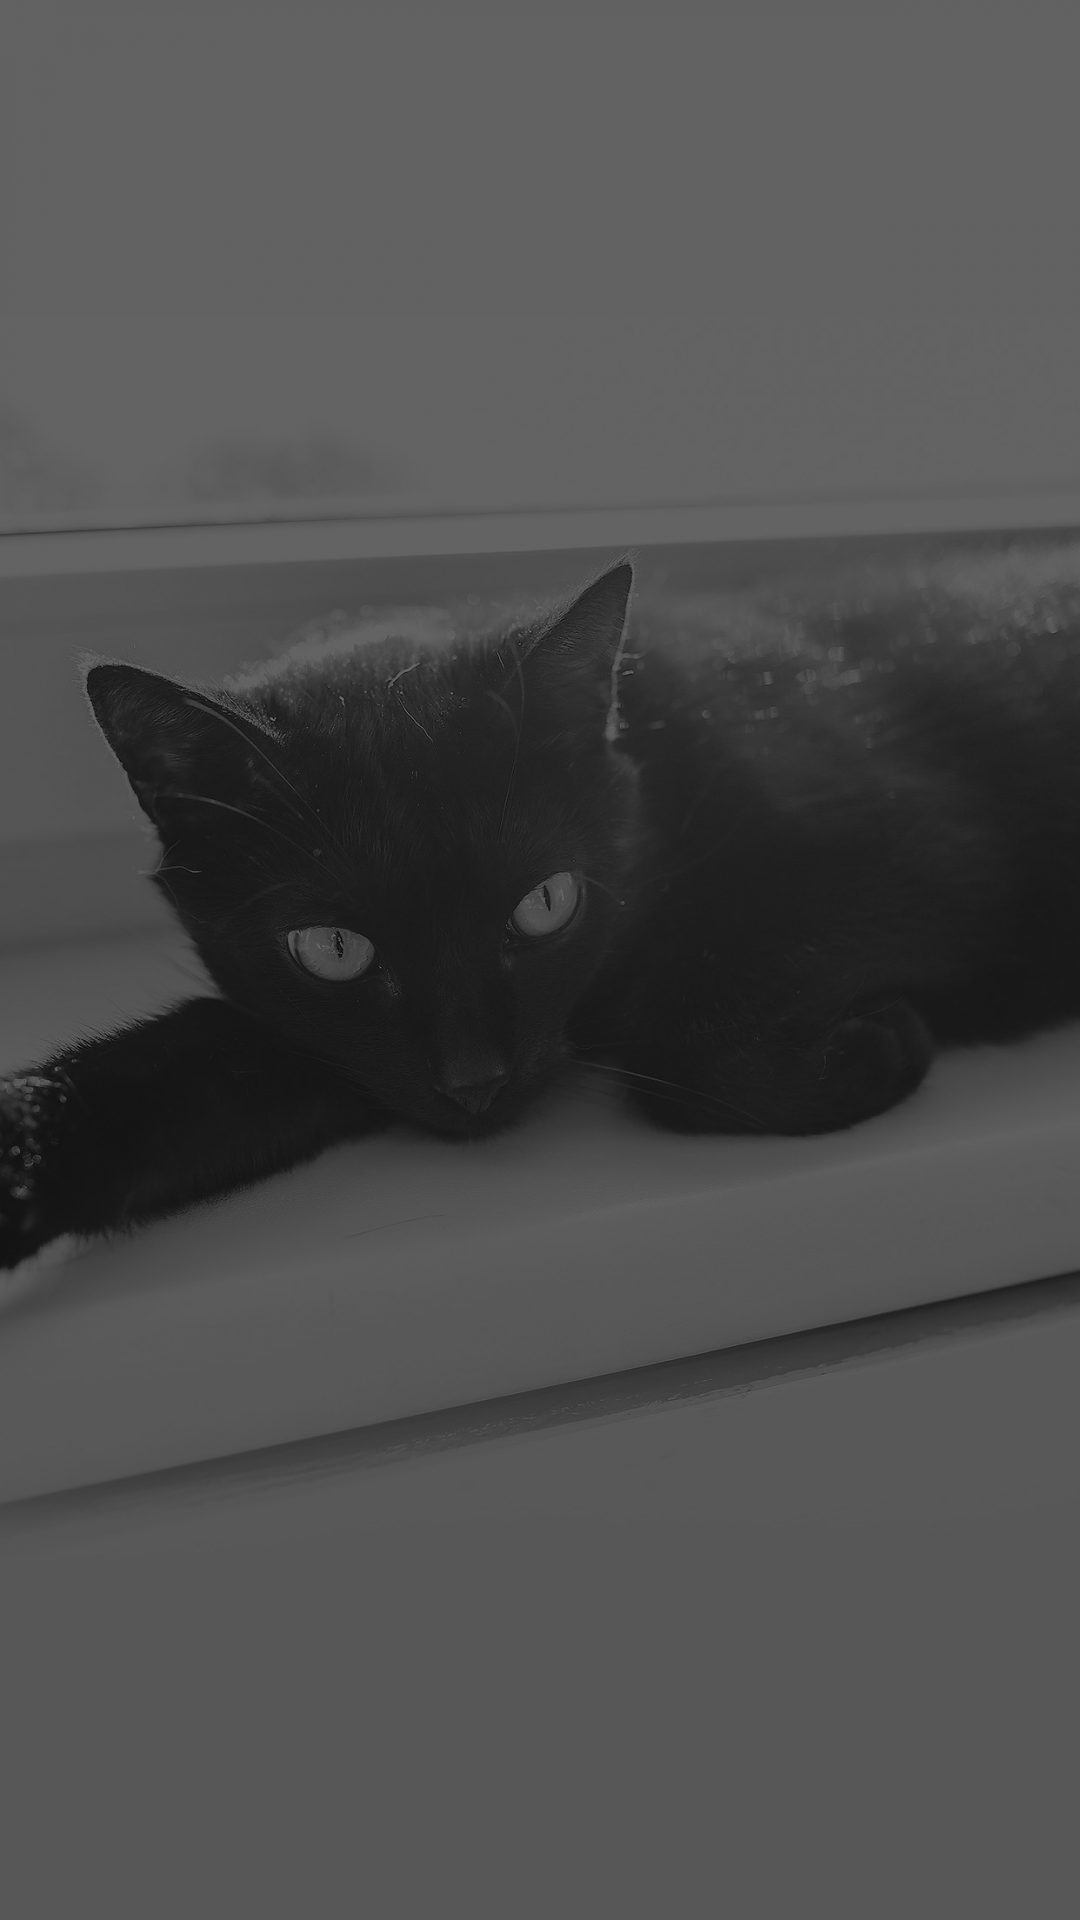 Black Cat Animal Cute Watching Dark Bw Wallpapers For Iphone